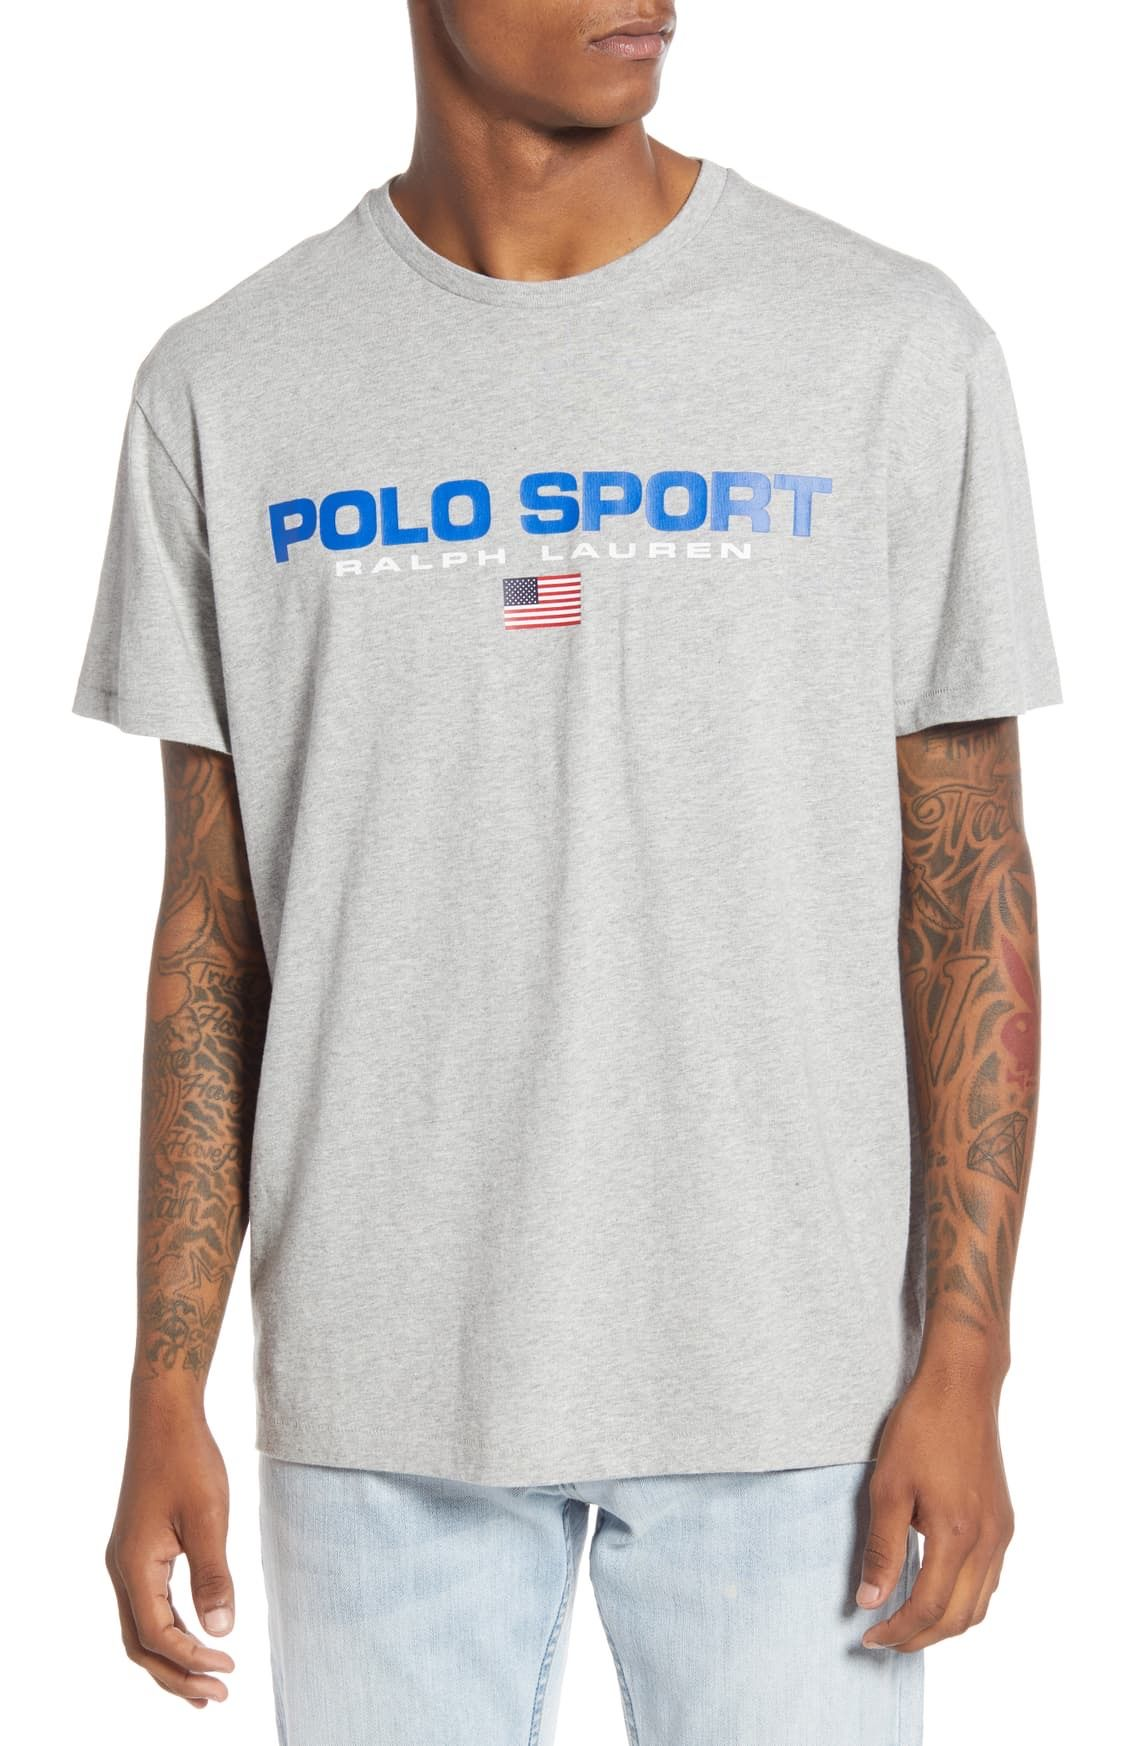 Pin by Jahkim Hendrix on Outfits Sport t shirt, Polo